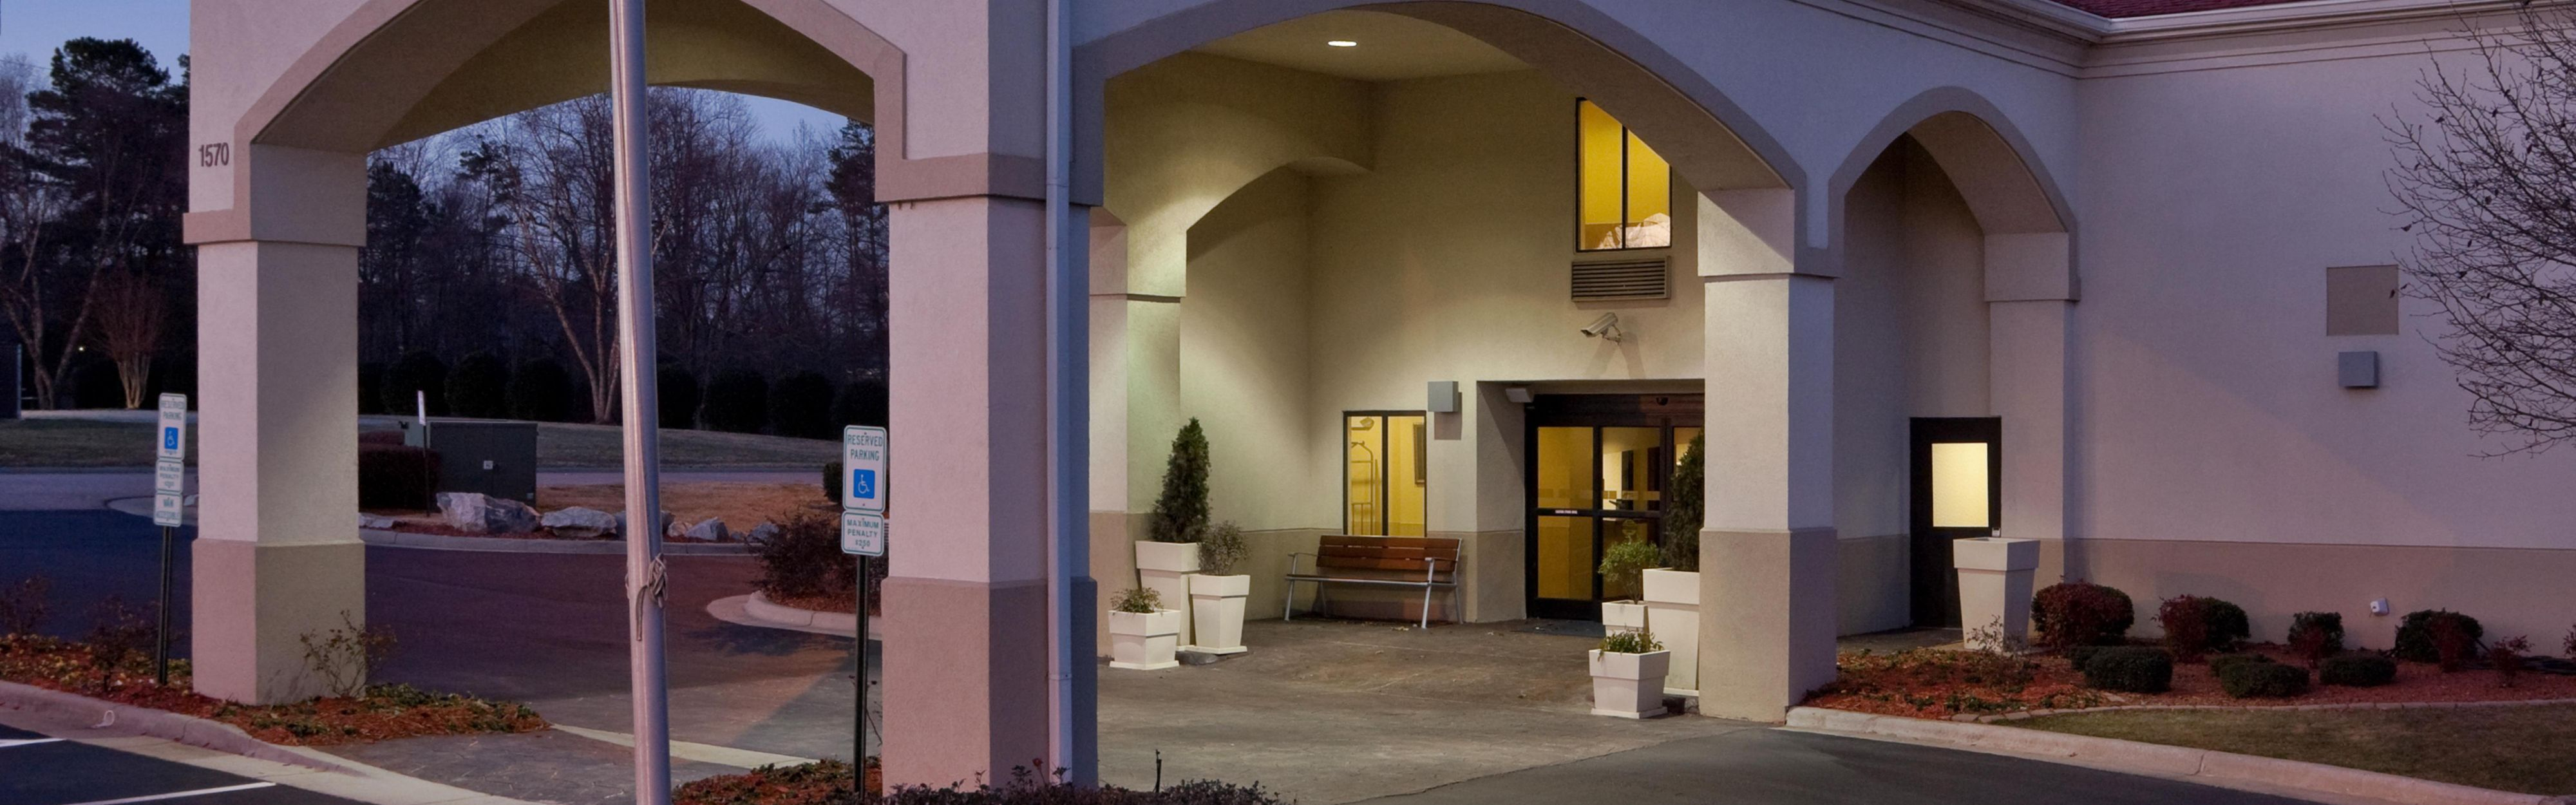 Holiday Inn Express Kernersville image 0